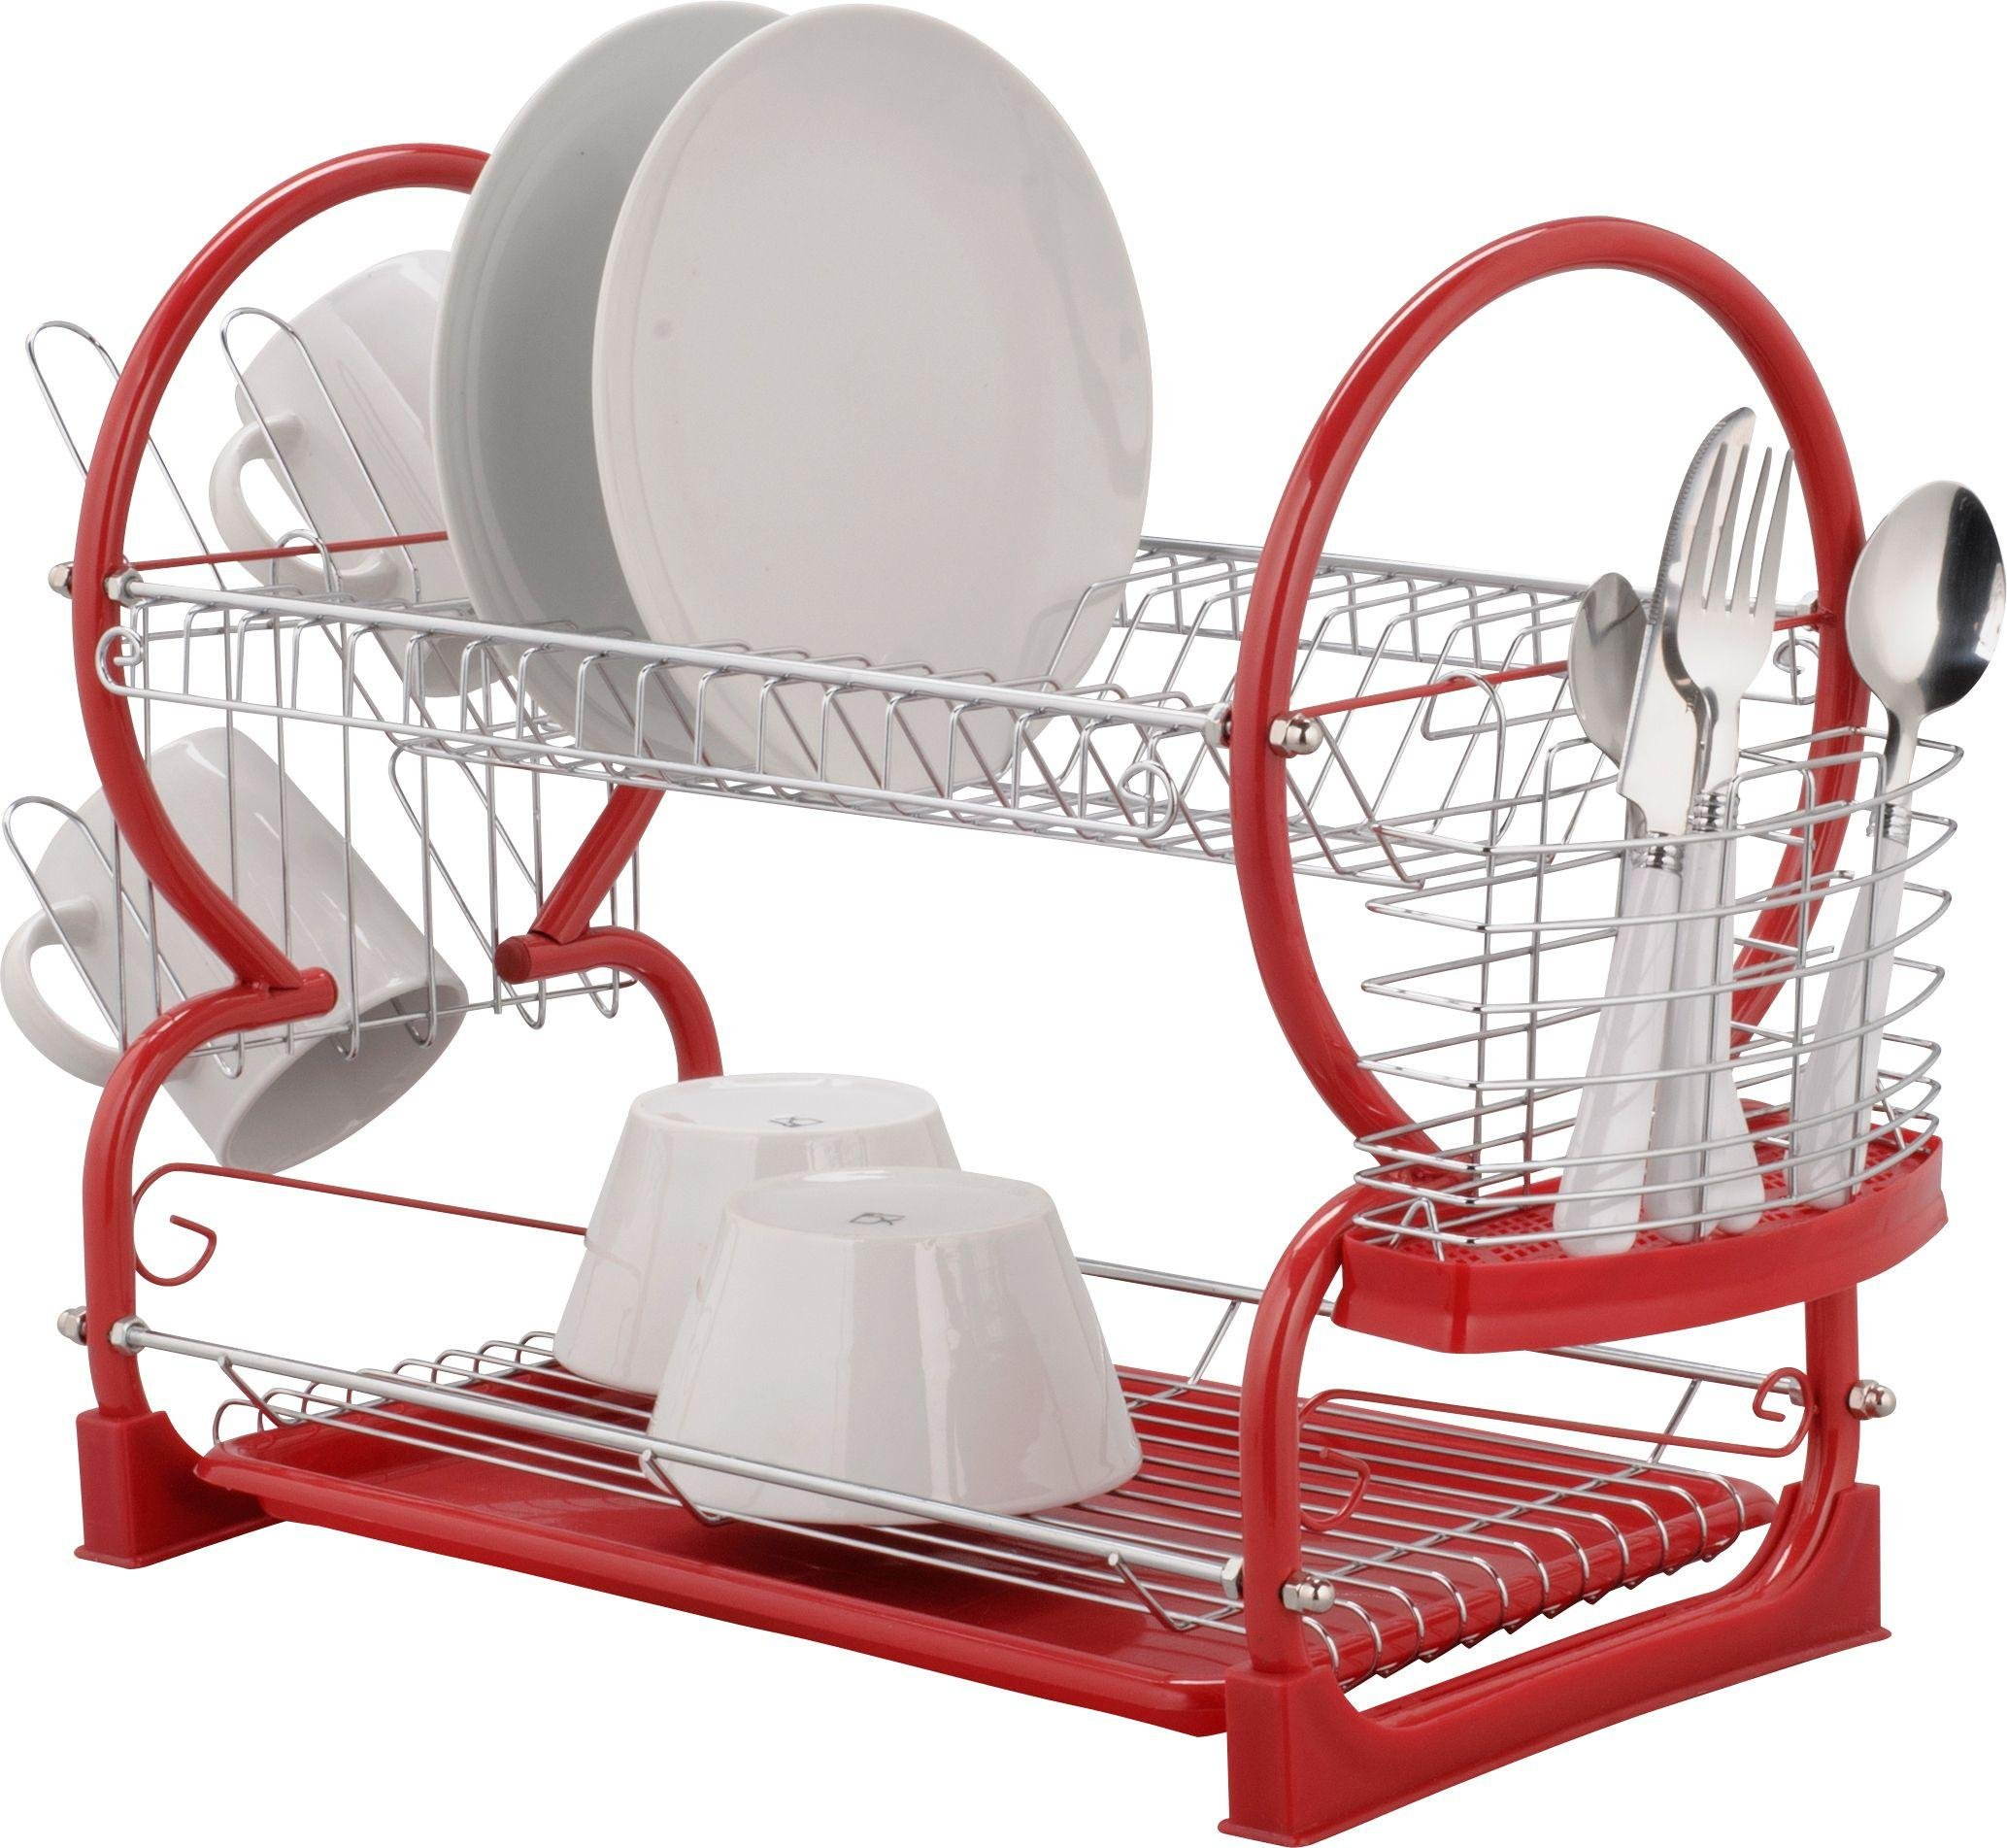 Image of HOME - 2 Tier Dish Rack - Red